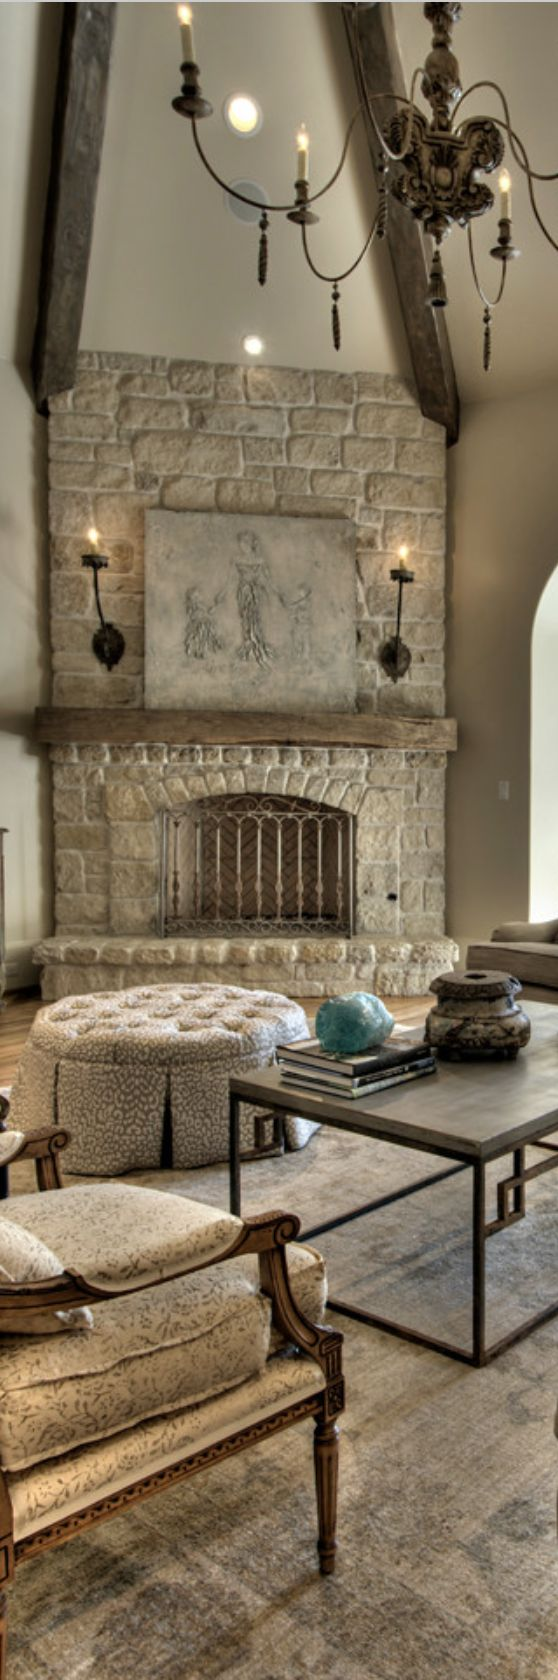 Best 25+ Mediterranean fireplaces ideas on Pinterest ...